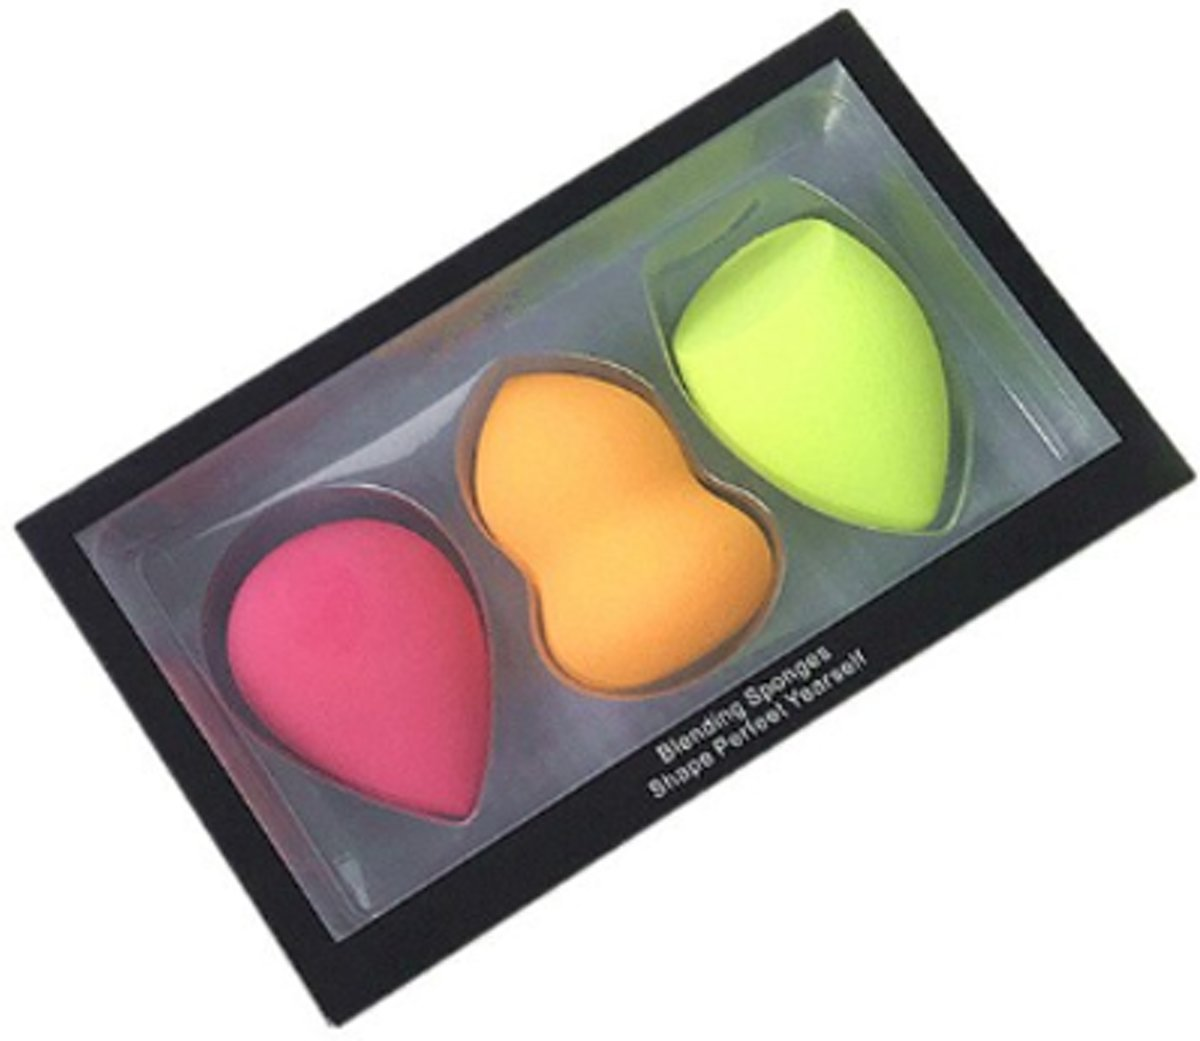 3 stuks | Beauty Blender Make-Up Sponzen Druppels | Miracle Complexion Sponges